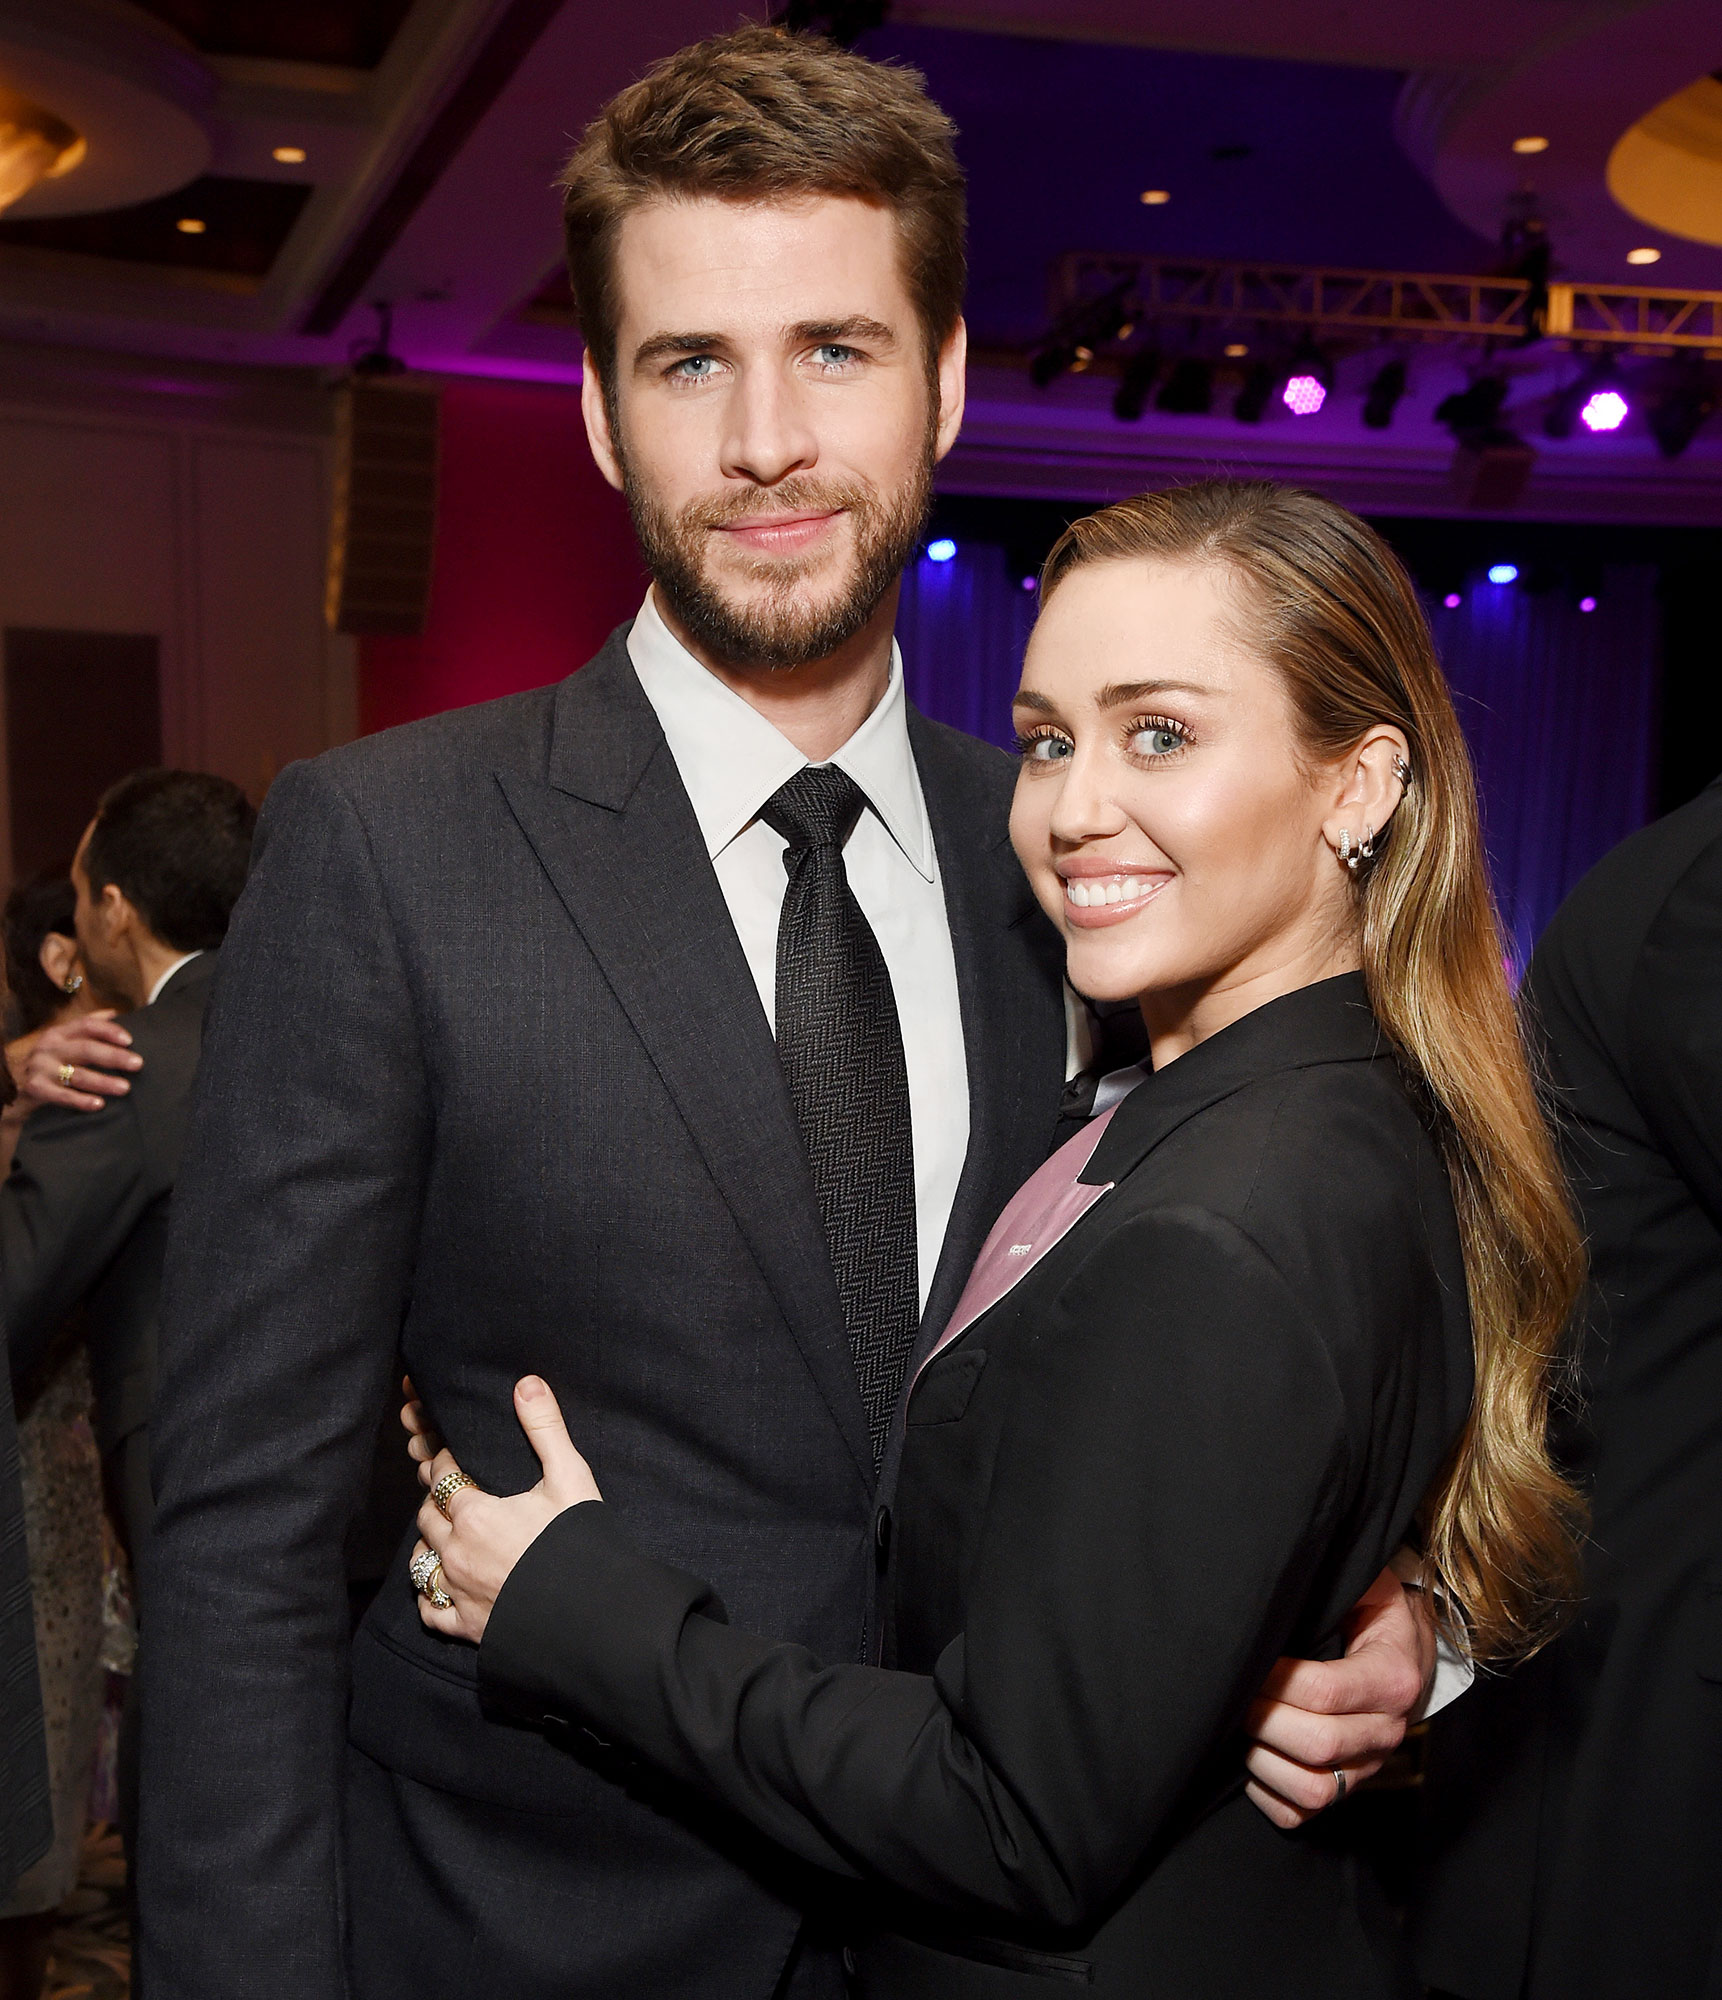 Liam Hemsworth Party In The USA Miley Cyrus Beale Street Music Festival